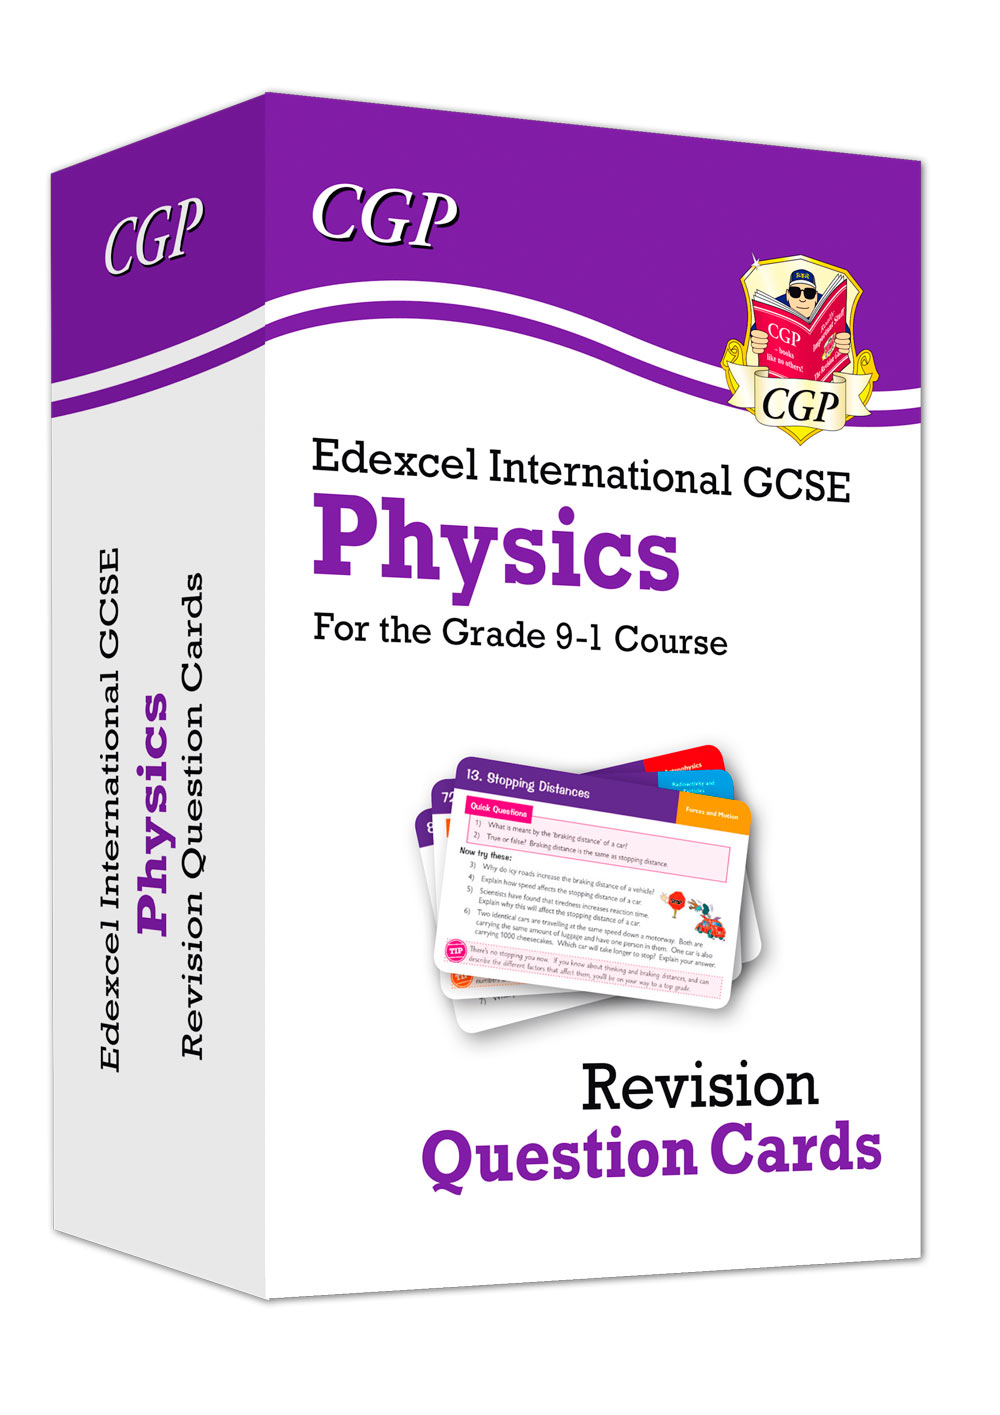 PEFI41 - New Grade 9-1 Edexcel International GCSE Physics: Revision Question Cards